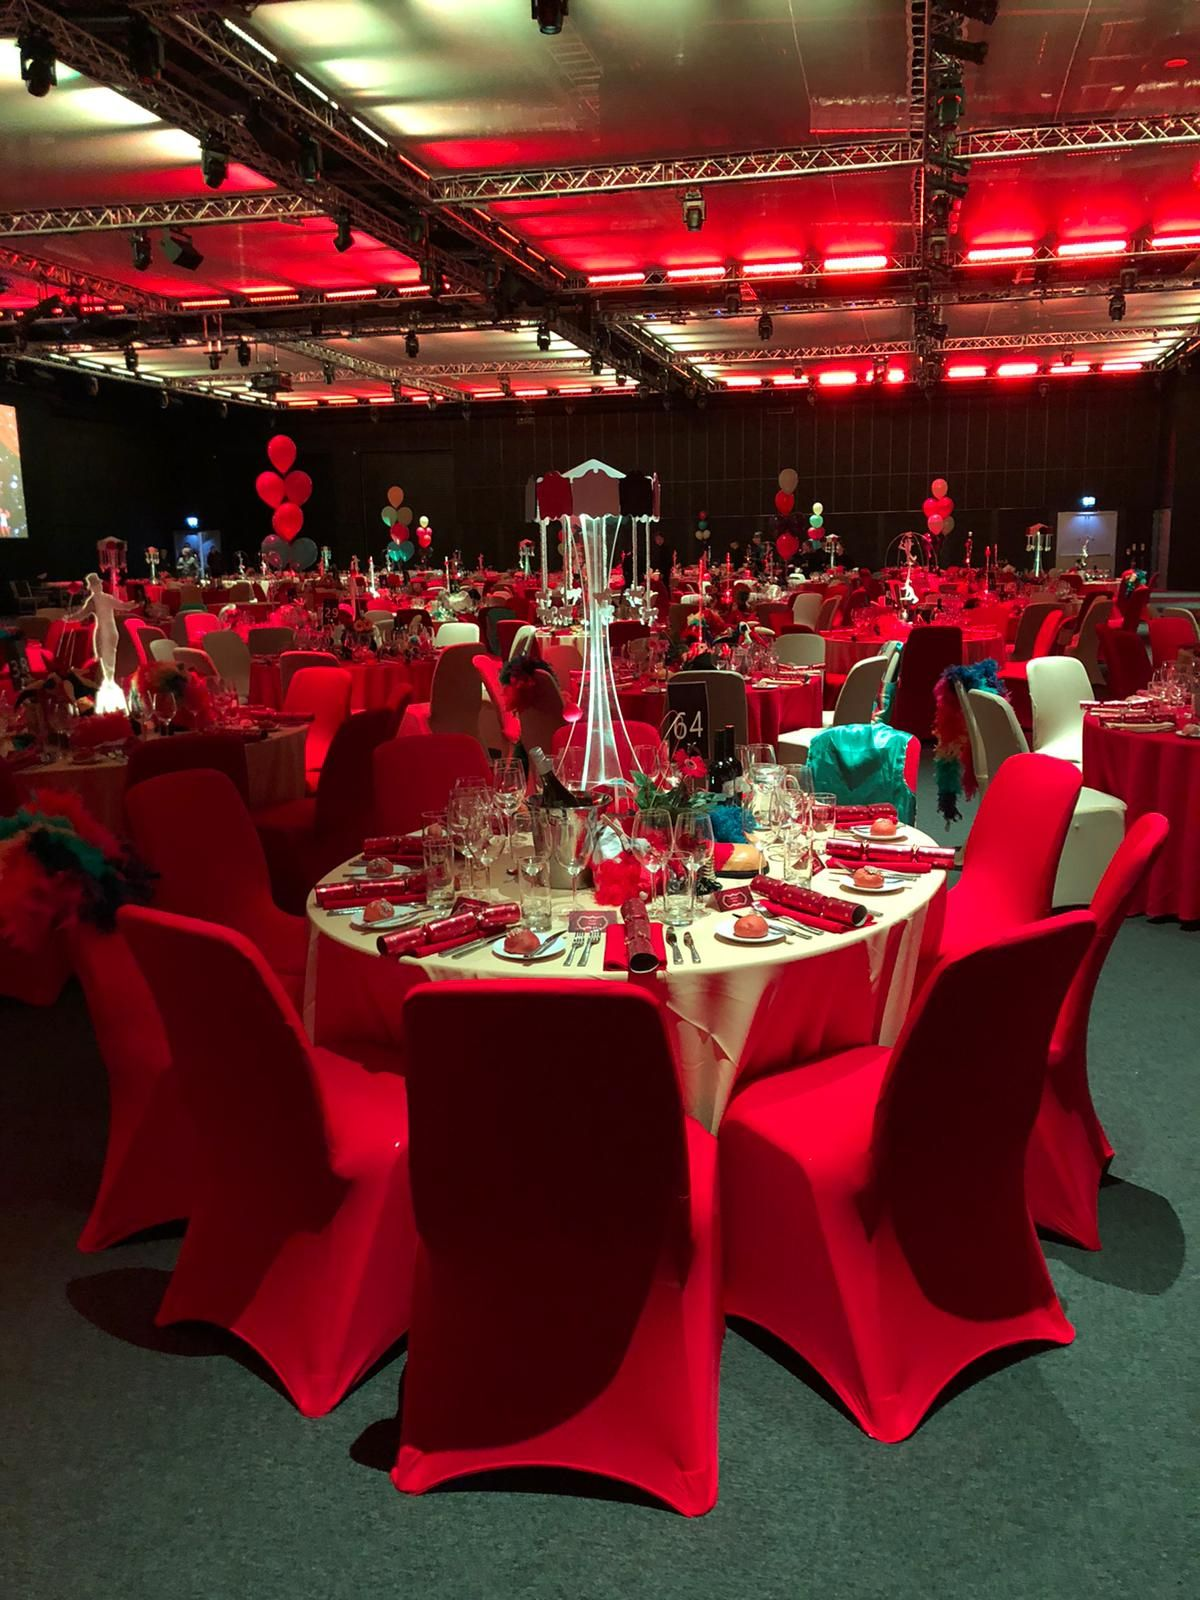 Looking Back On Recent Christmas Set Ups By Our Event Art Team And Loving Some Of The Amazing Concepts Here S Furniture Hire Photo Booth Hire Table Centers